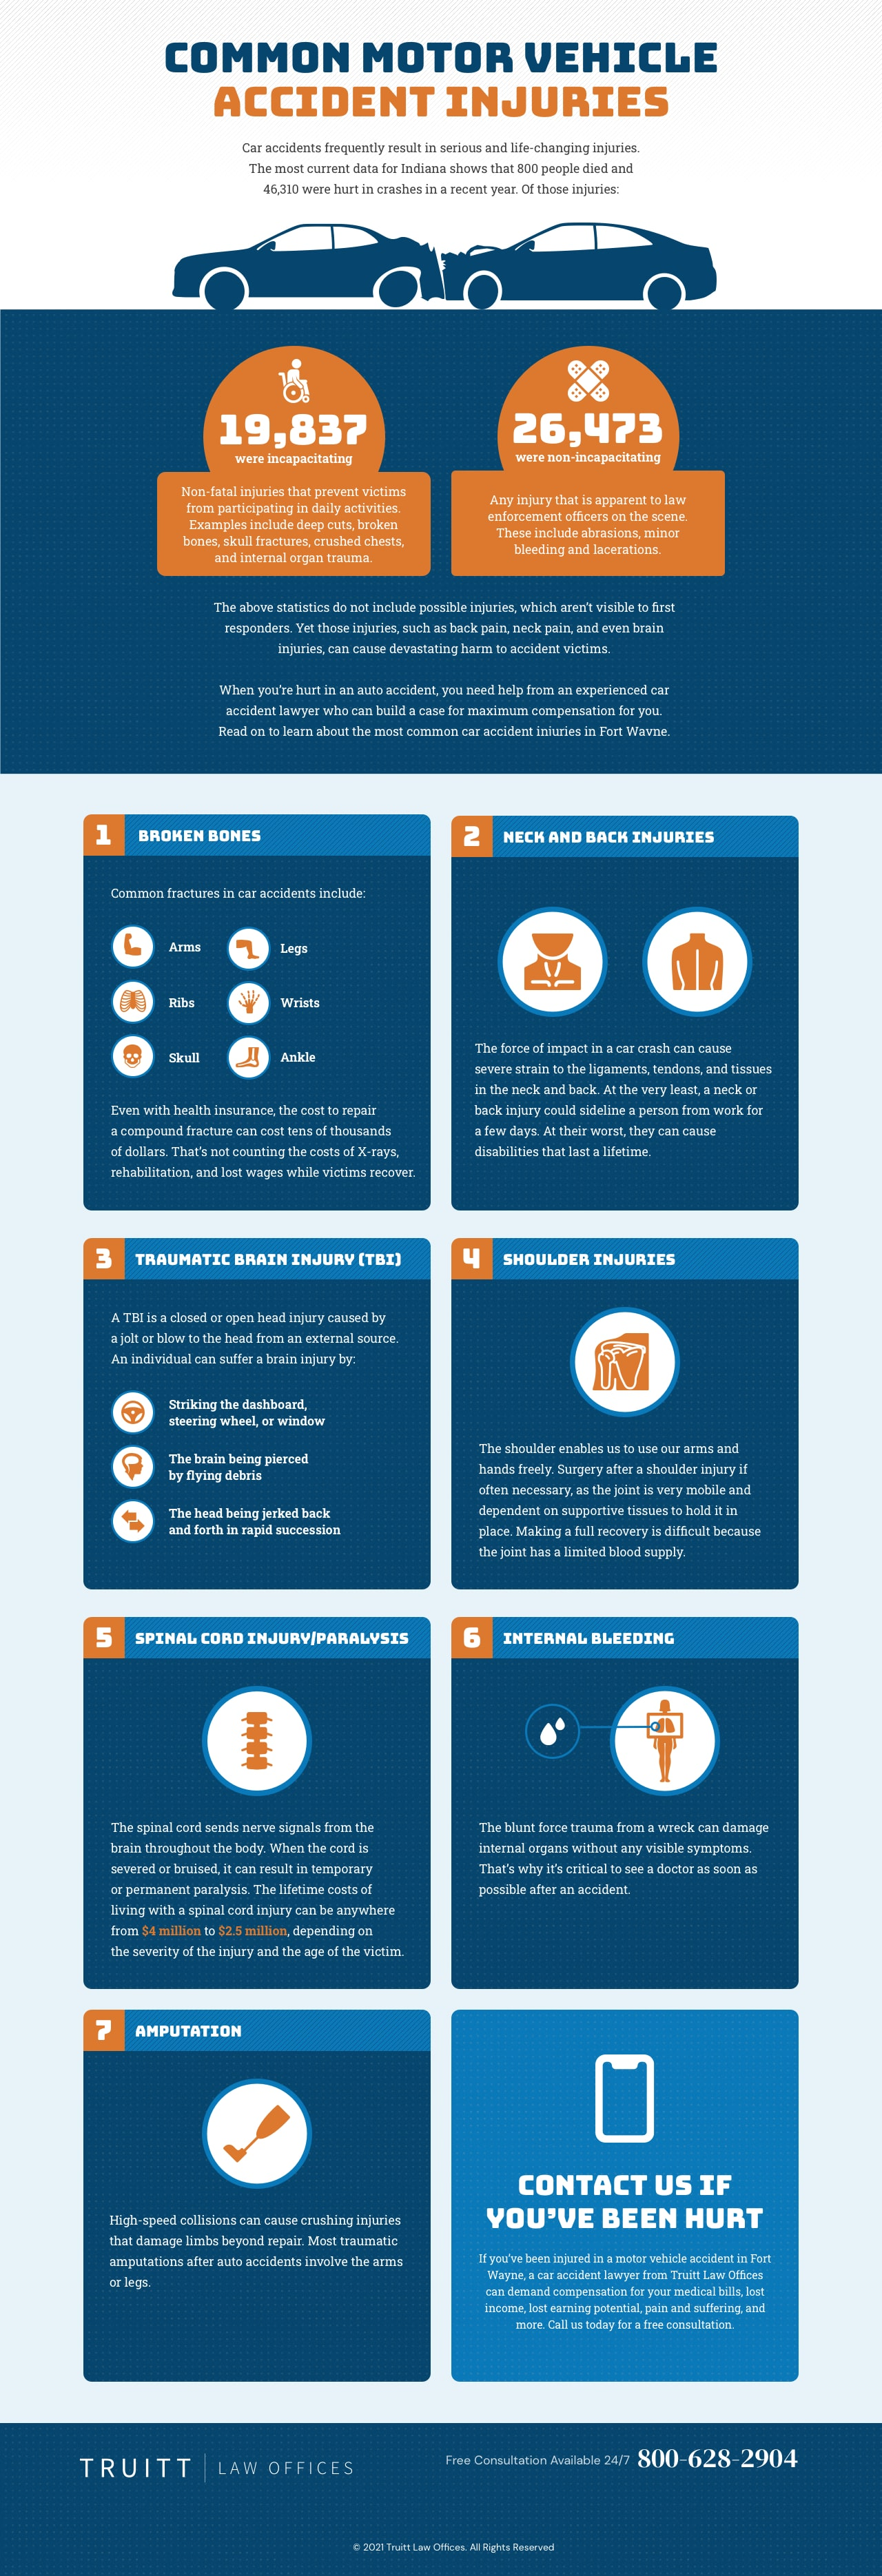 Common Motor Vehicle Accident Injuries Infopgraphic - Truitt Law Offices